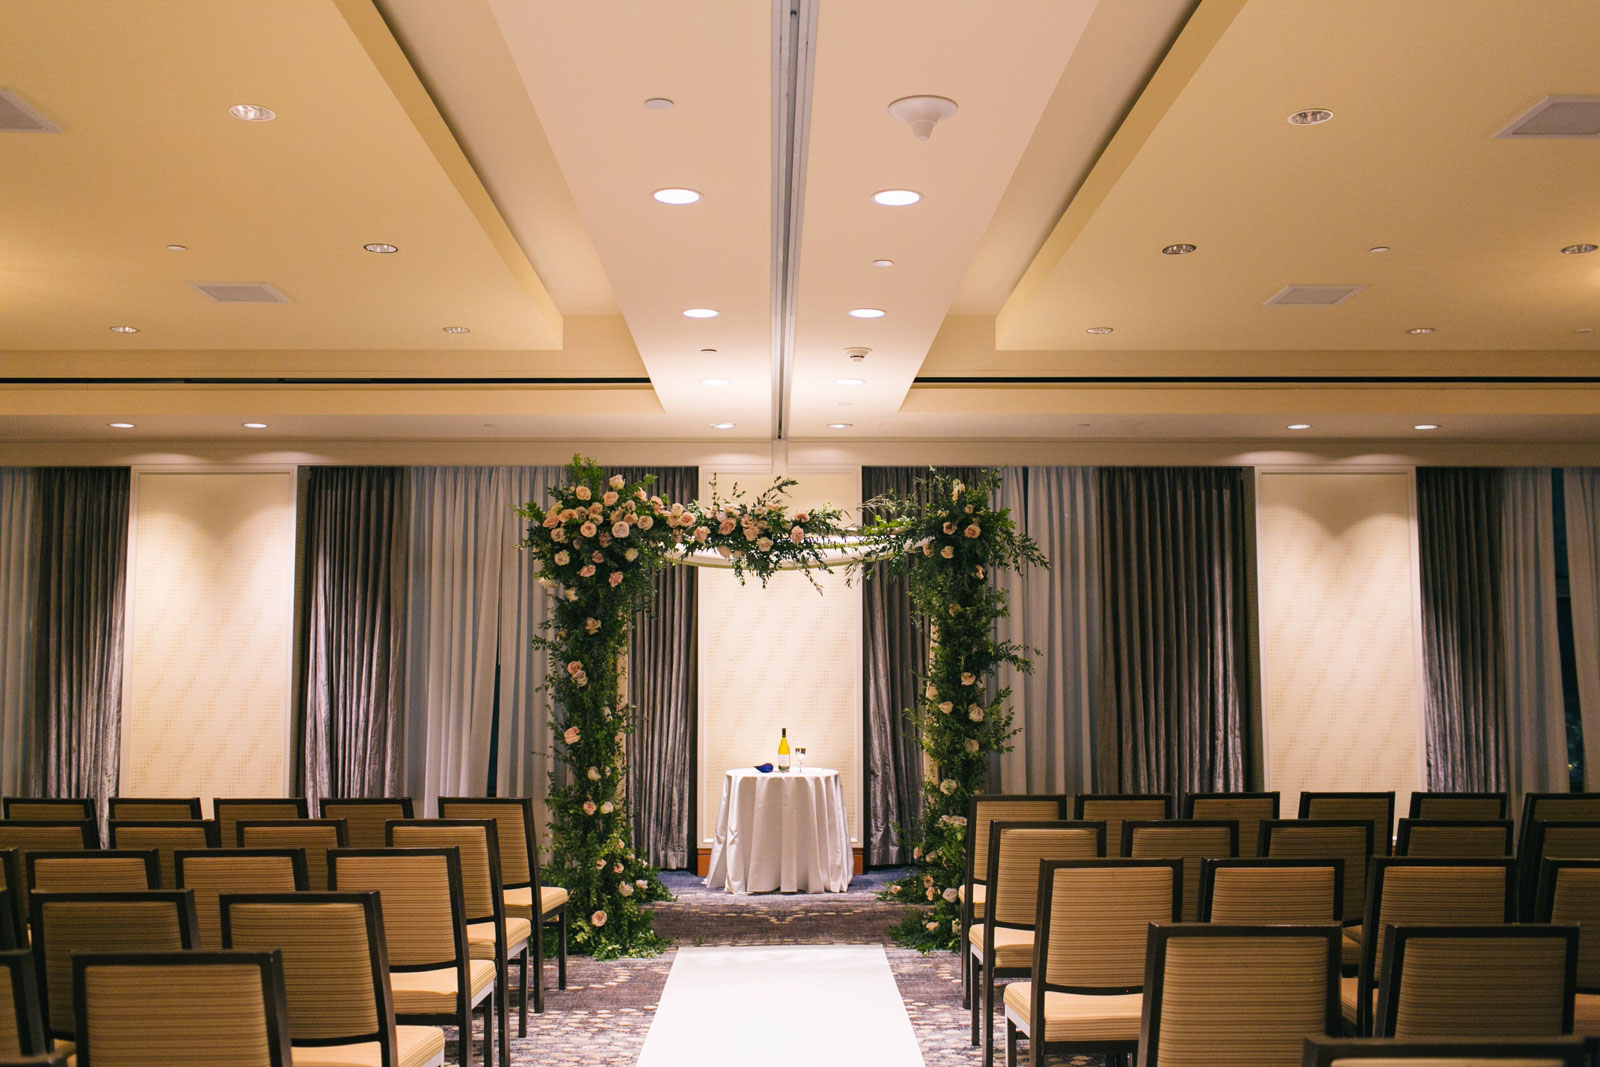 wedding ceremony room in Ritz-Carlton with chuppah decorated with roses and greenery